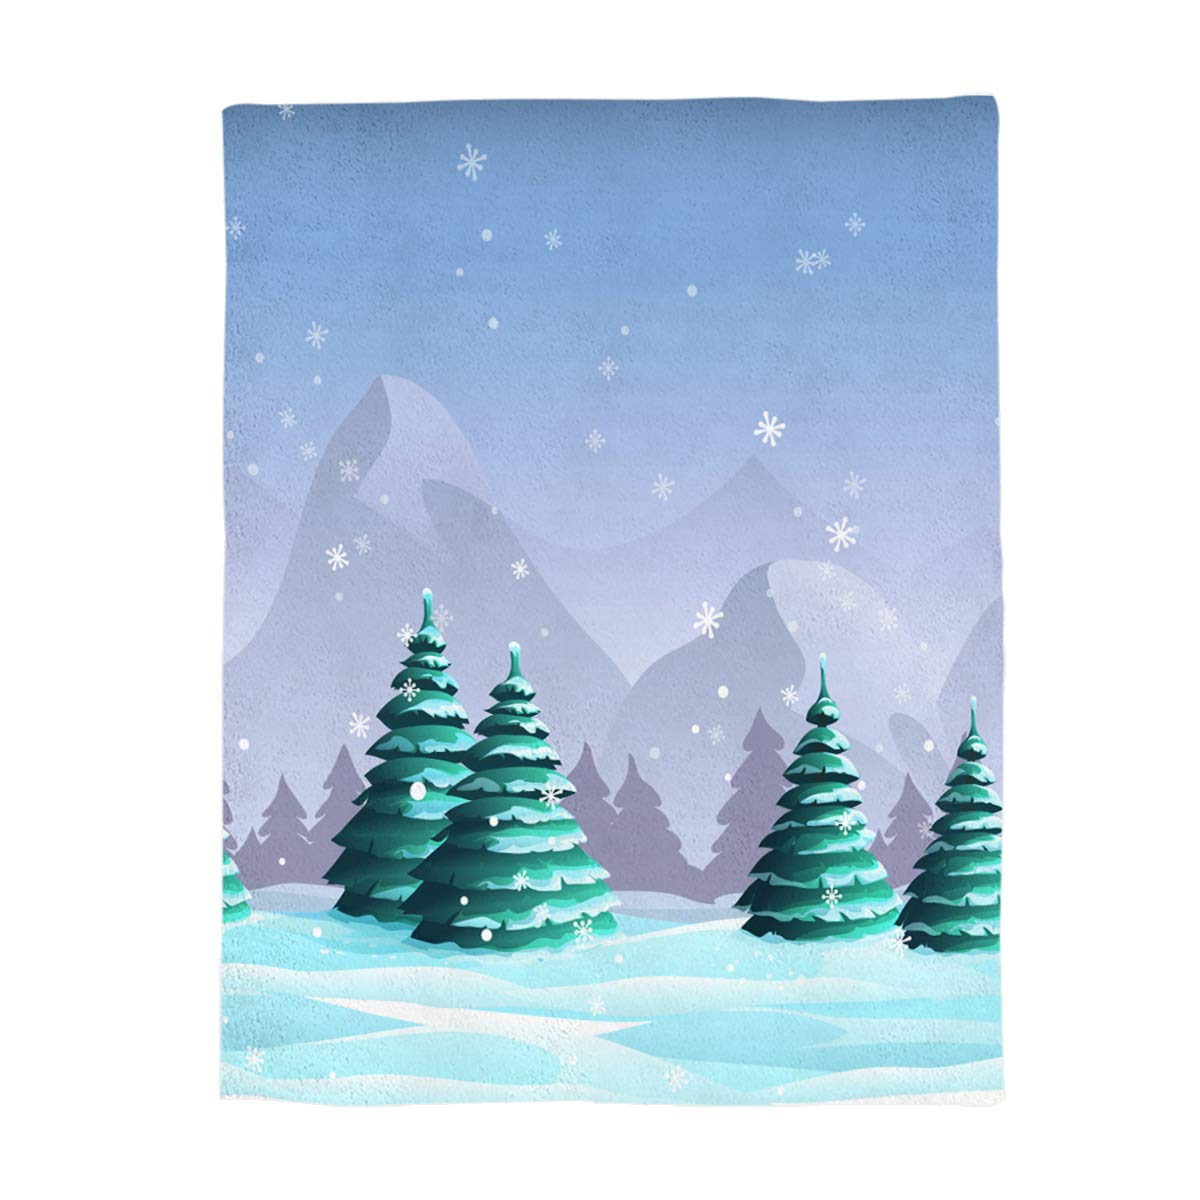 Christmas Treegry2335 Full Size 50 x60  Greday Christmas Throw Blankets for Adults Kids Comfort Luxuriously Soft Throw Blanket AllSeasons Couch Blanket or Bed Throw,Full Size 50 x60